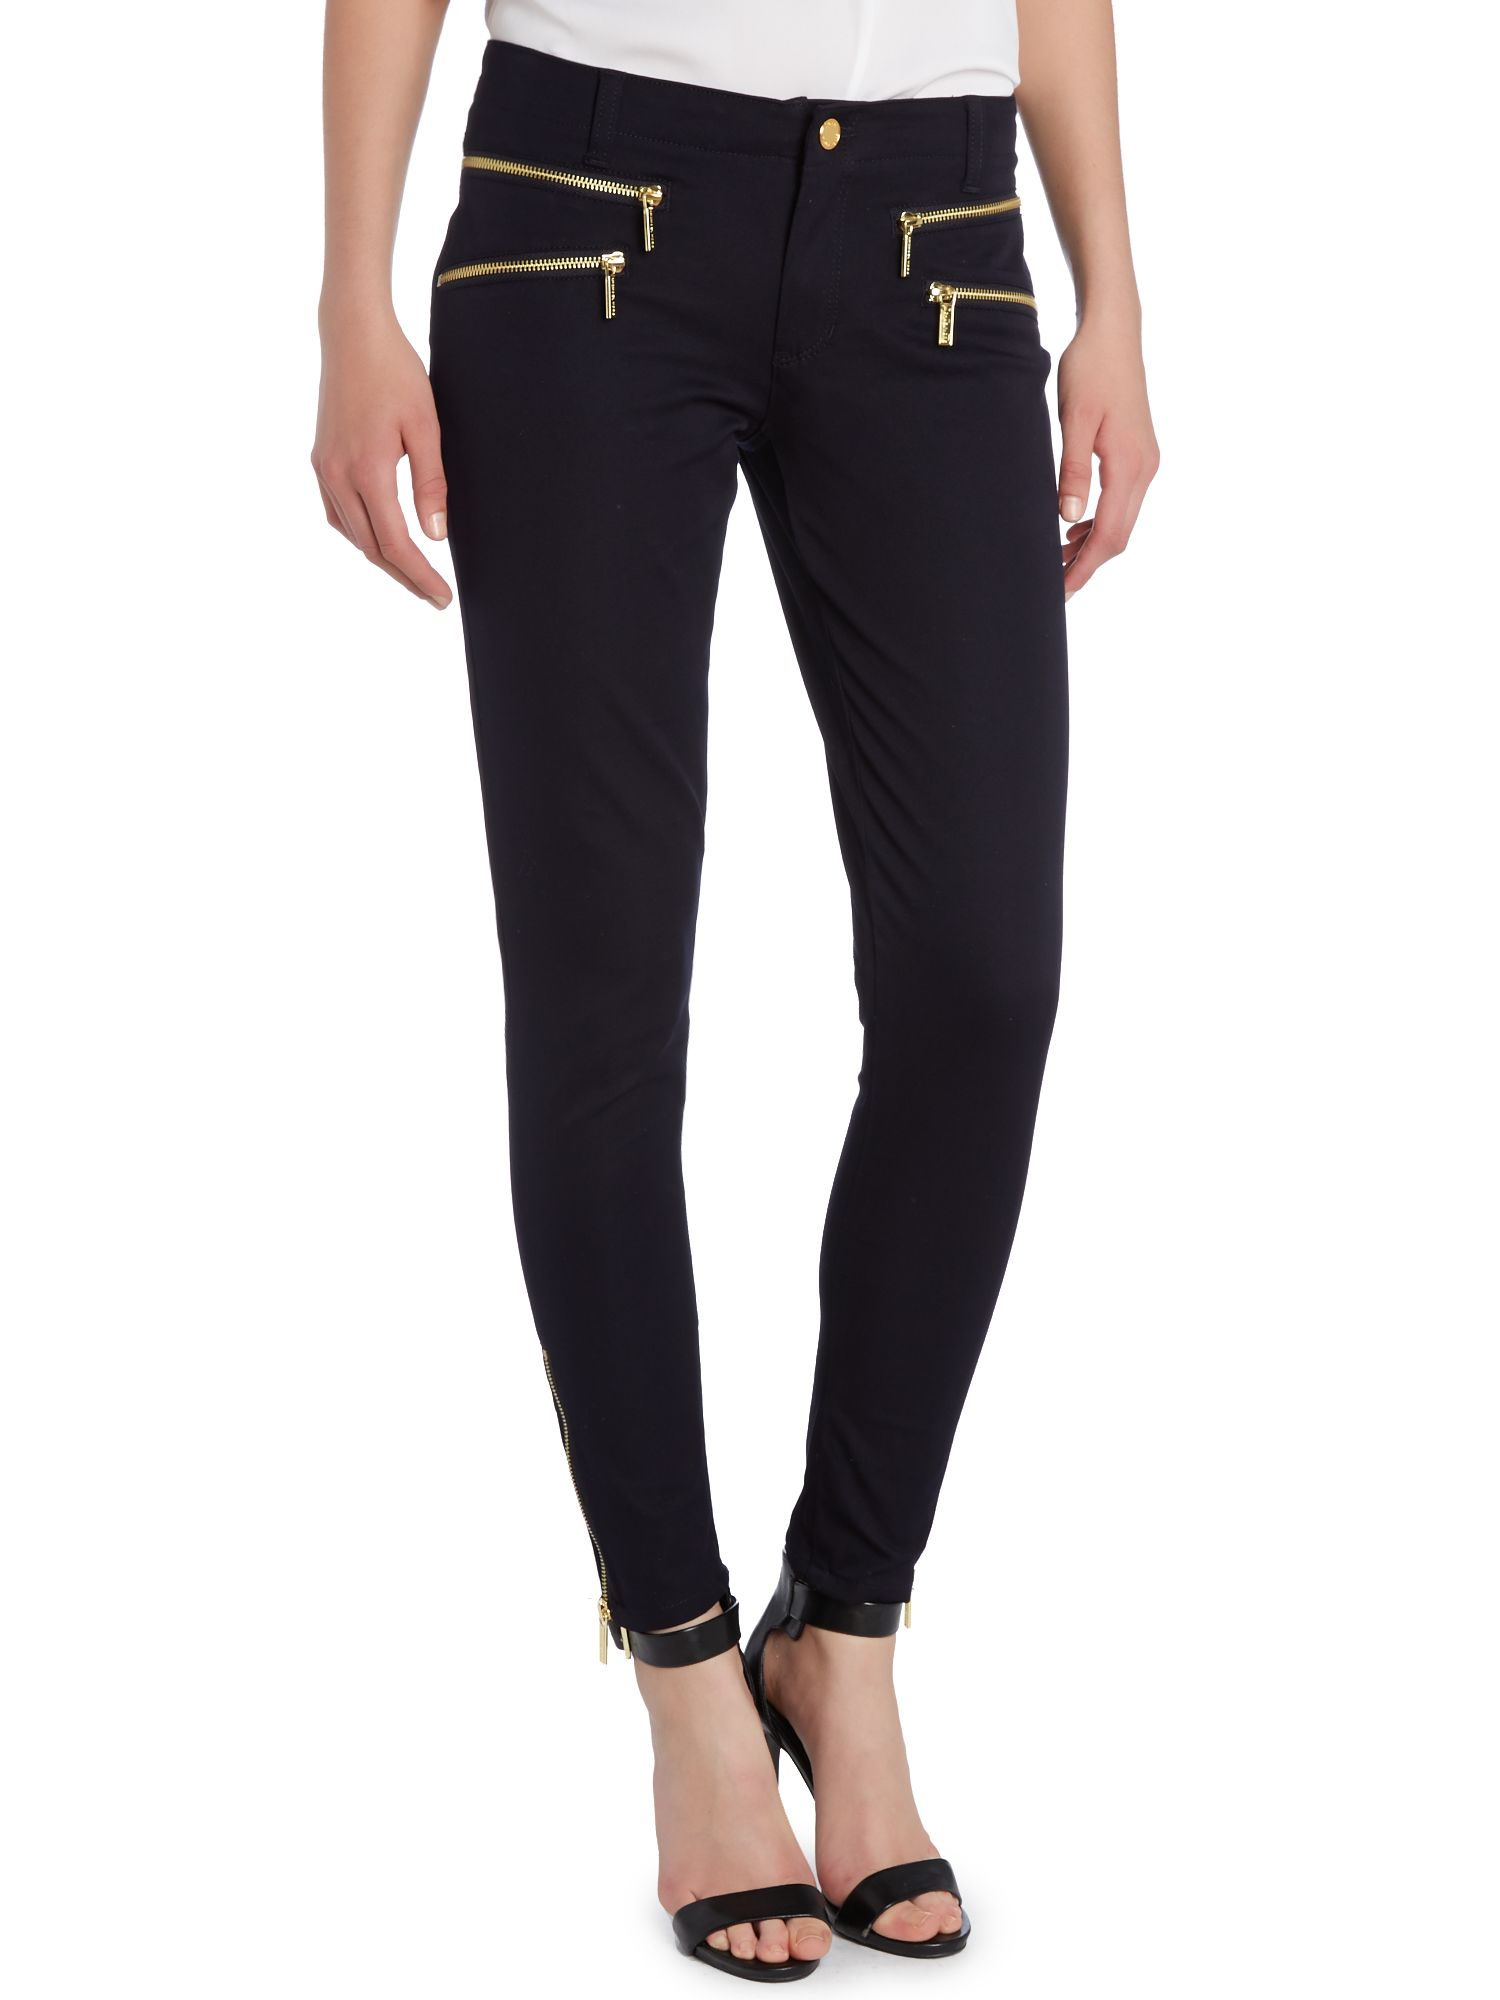 Michael kors Rocker Zip Skinny Jean in Blue | Lyst